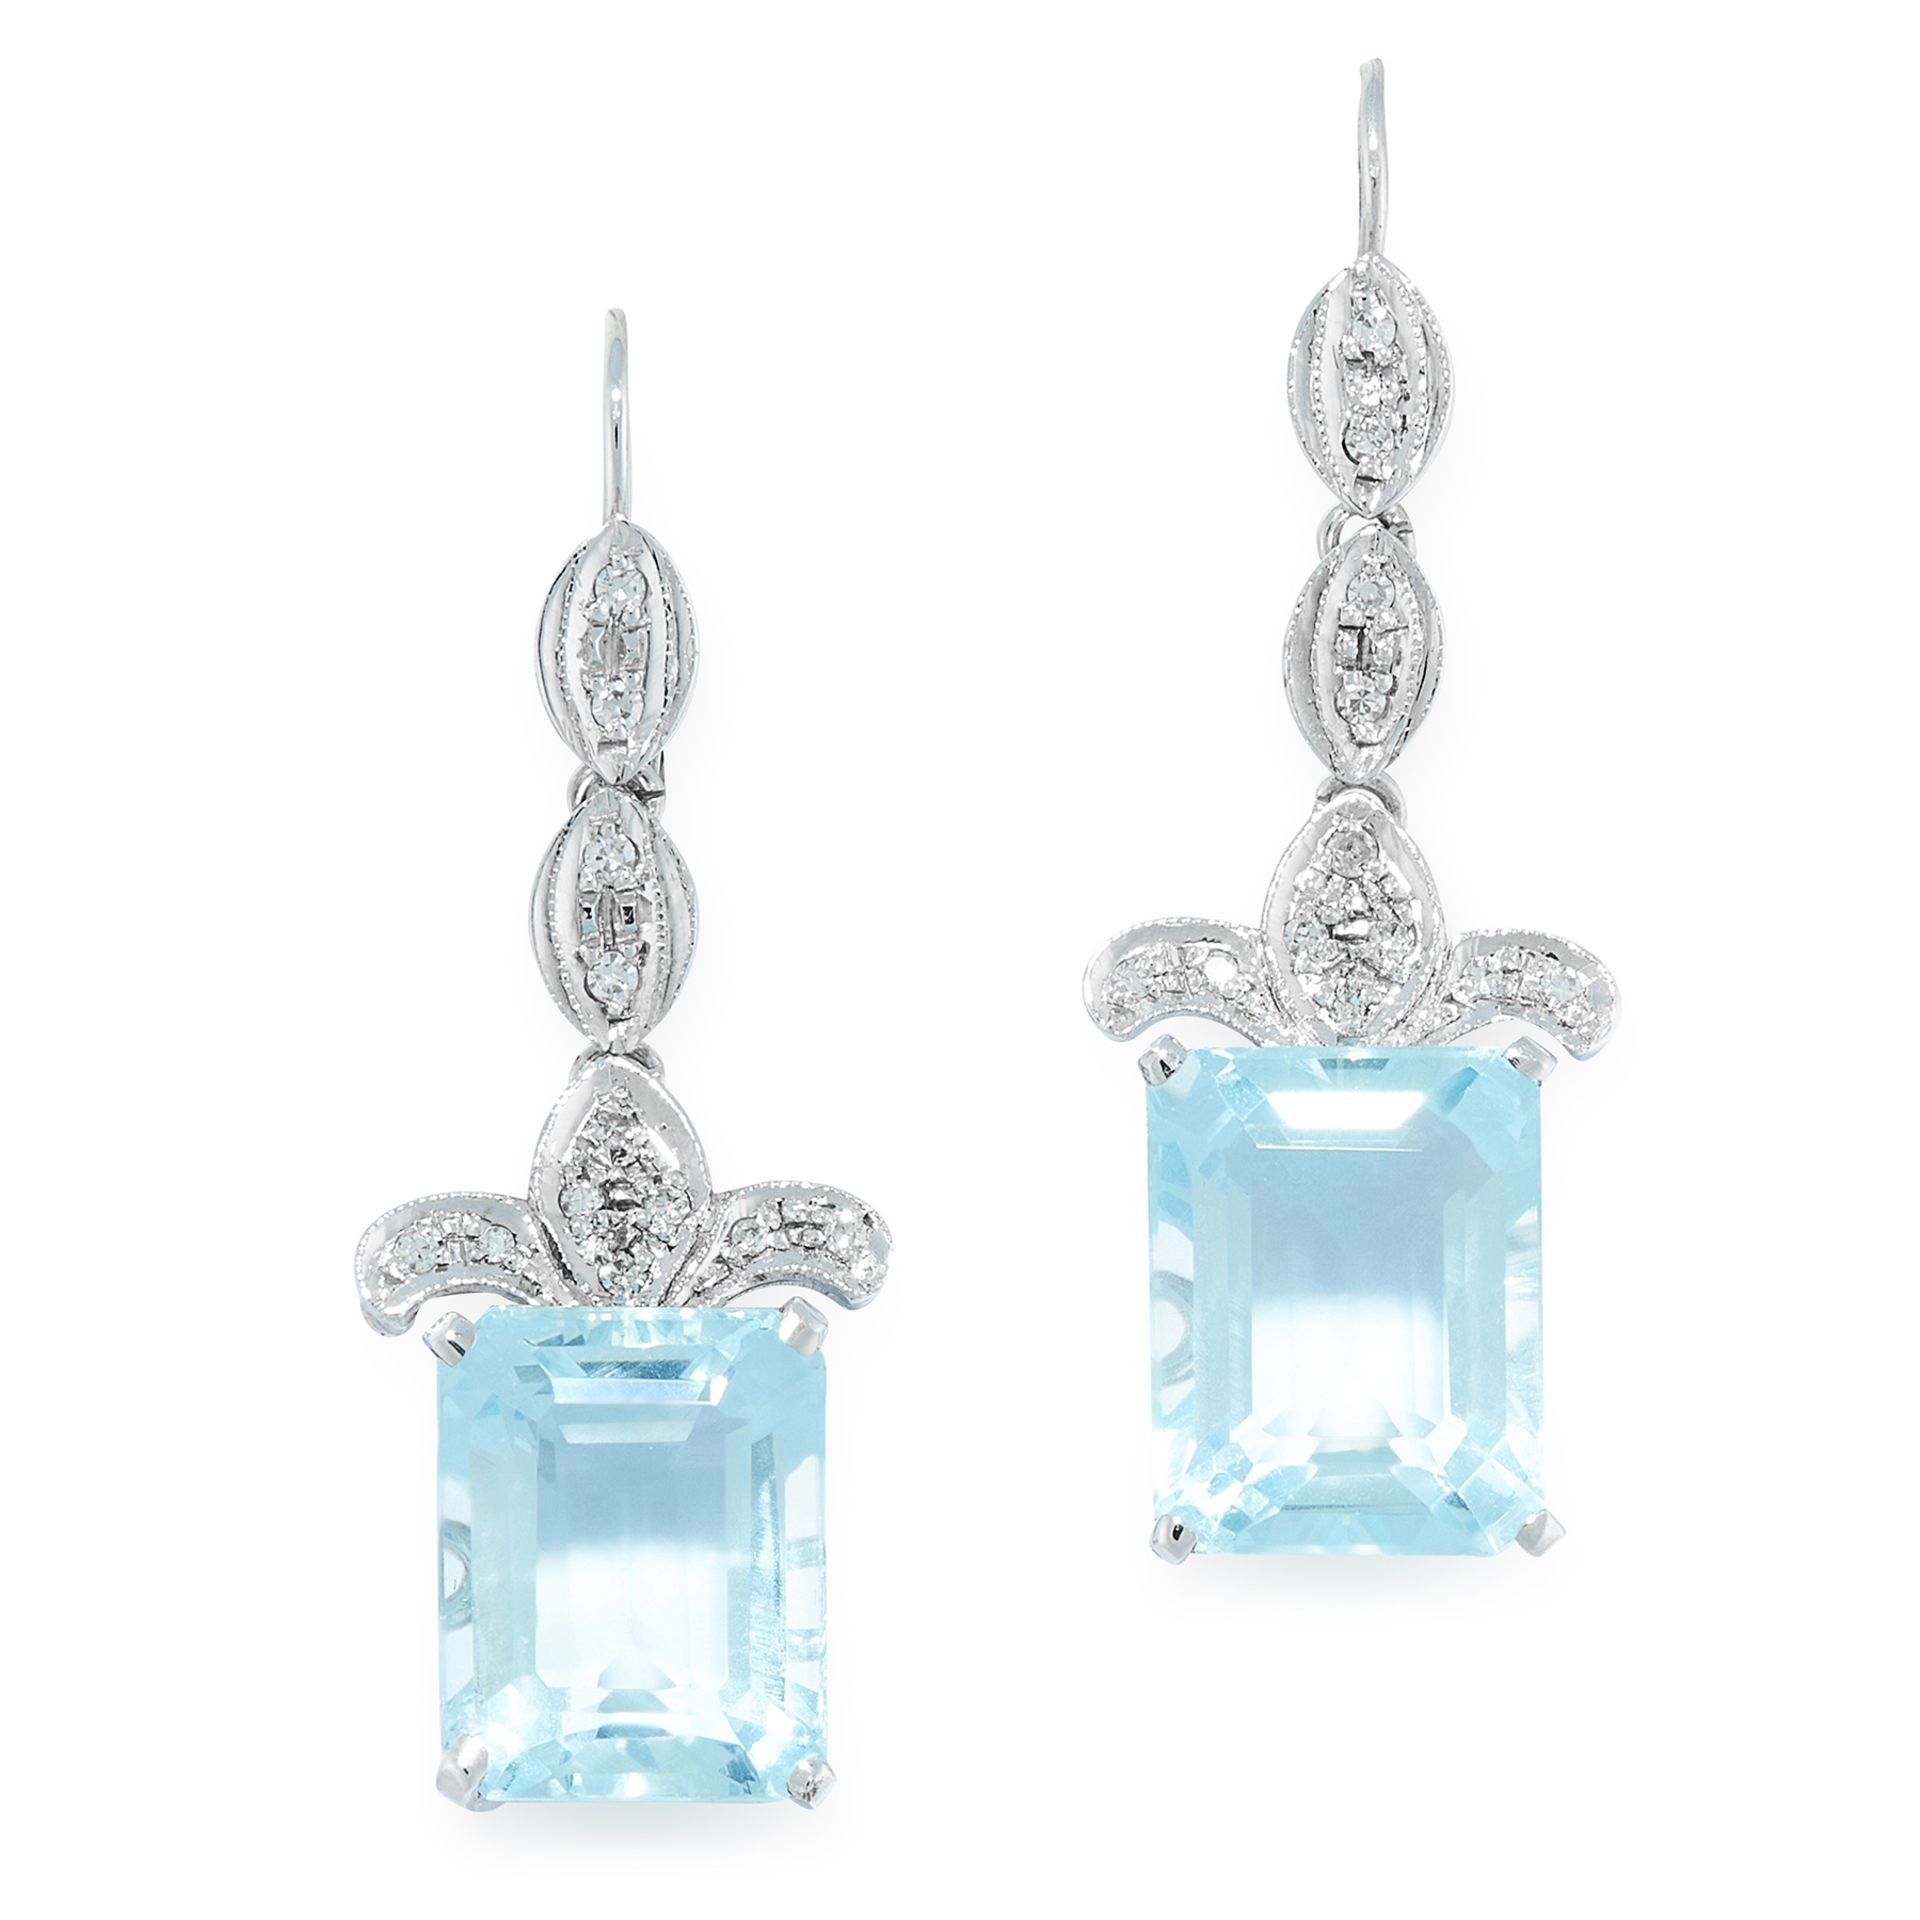 A PAIR OF BLUE TOPAZ AND DIAMOND EARRINGS in white gold, each set with an emerald cut blue topaz